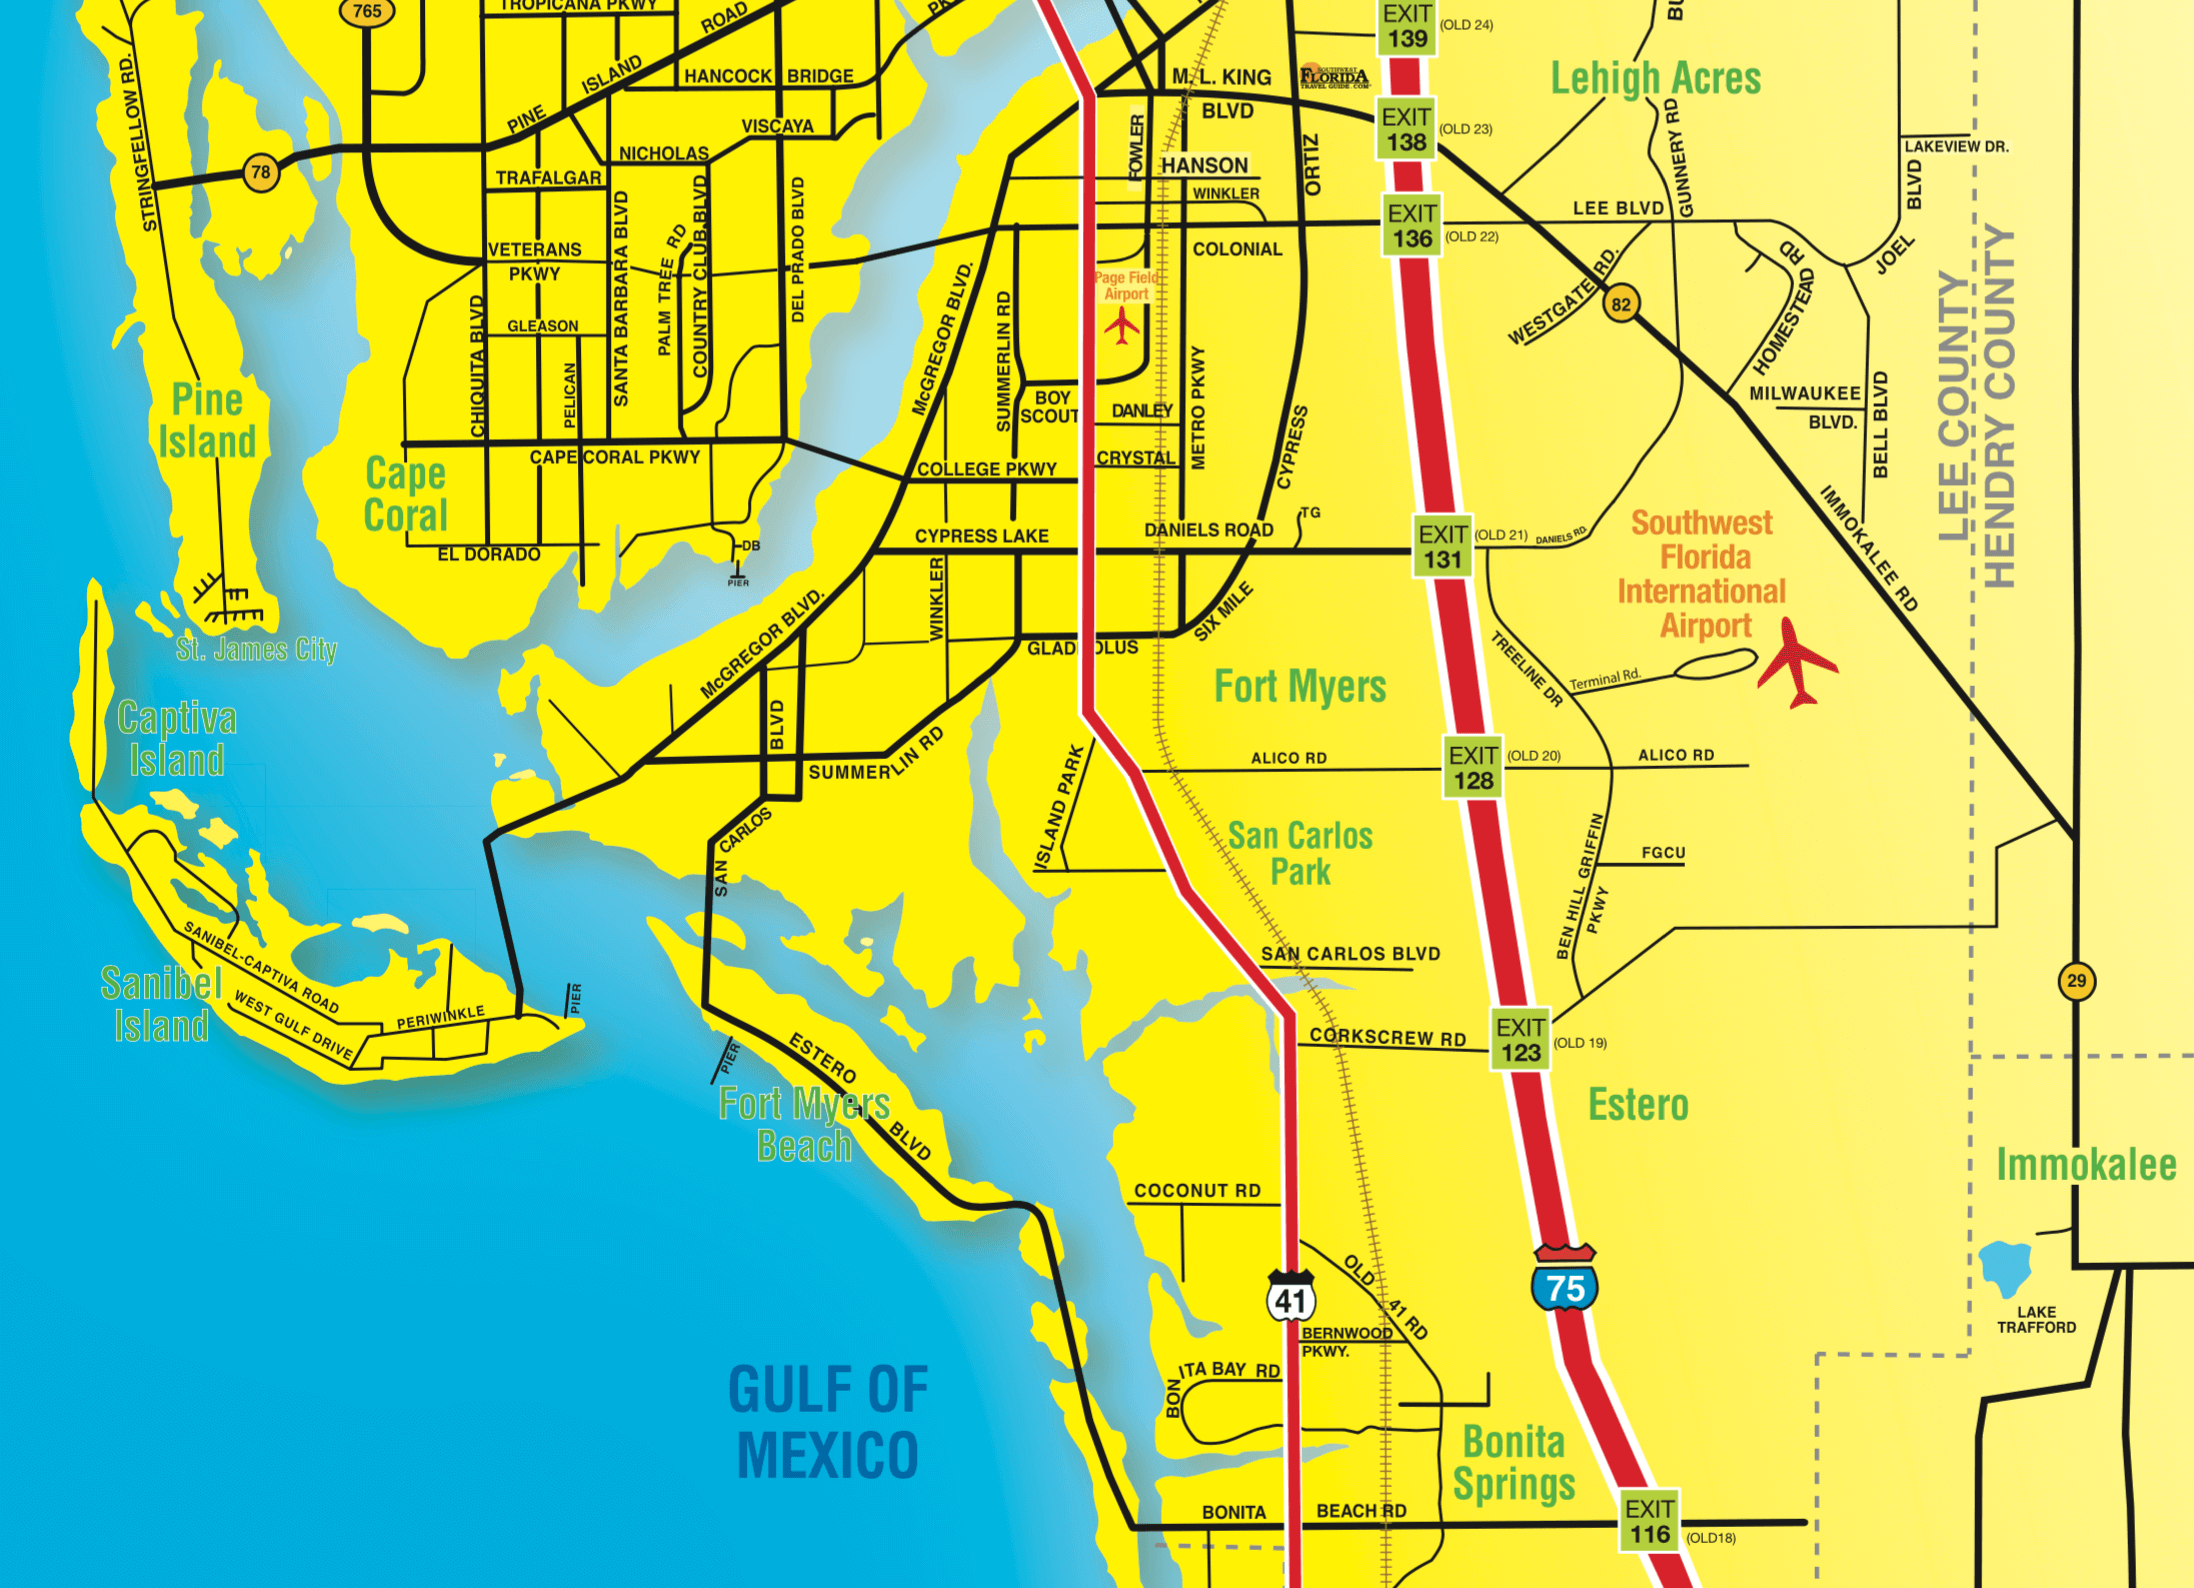 Florida Maps - Southwest Florida Travel - Where Is Port Charlotte Florida On A Map